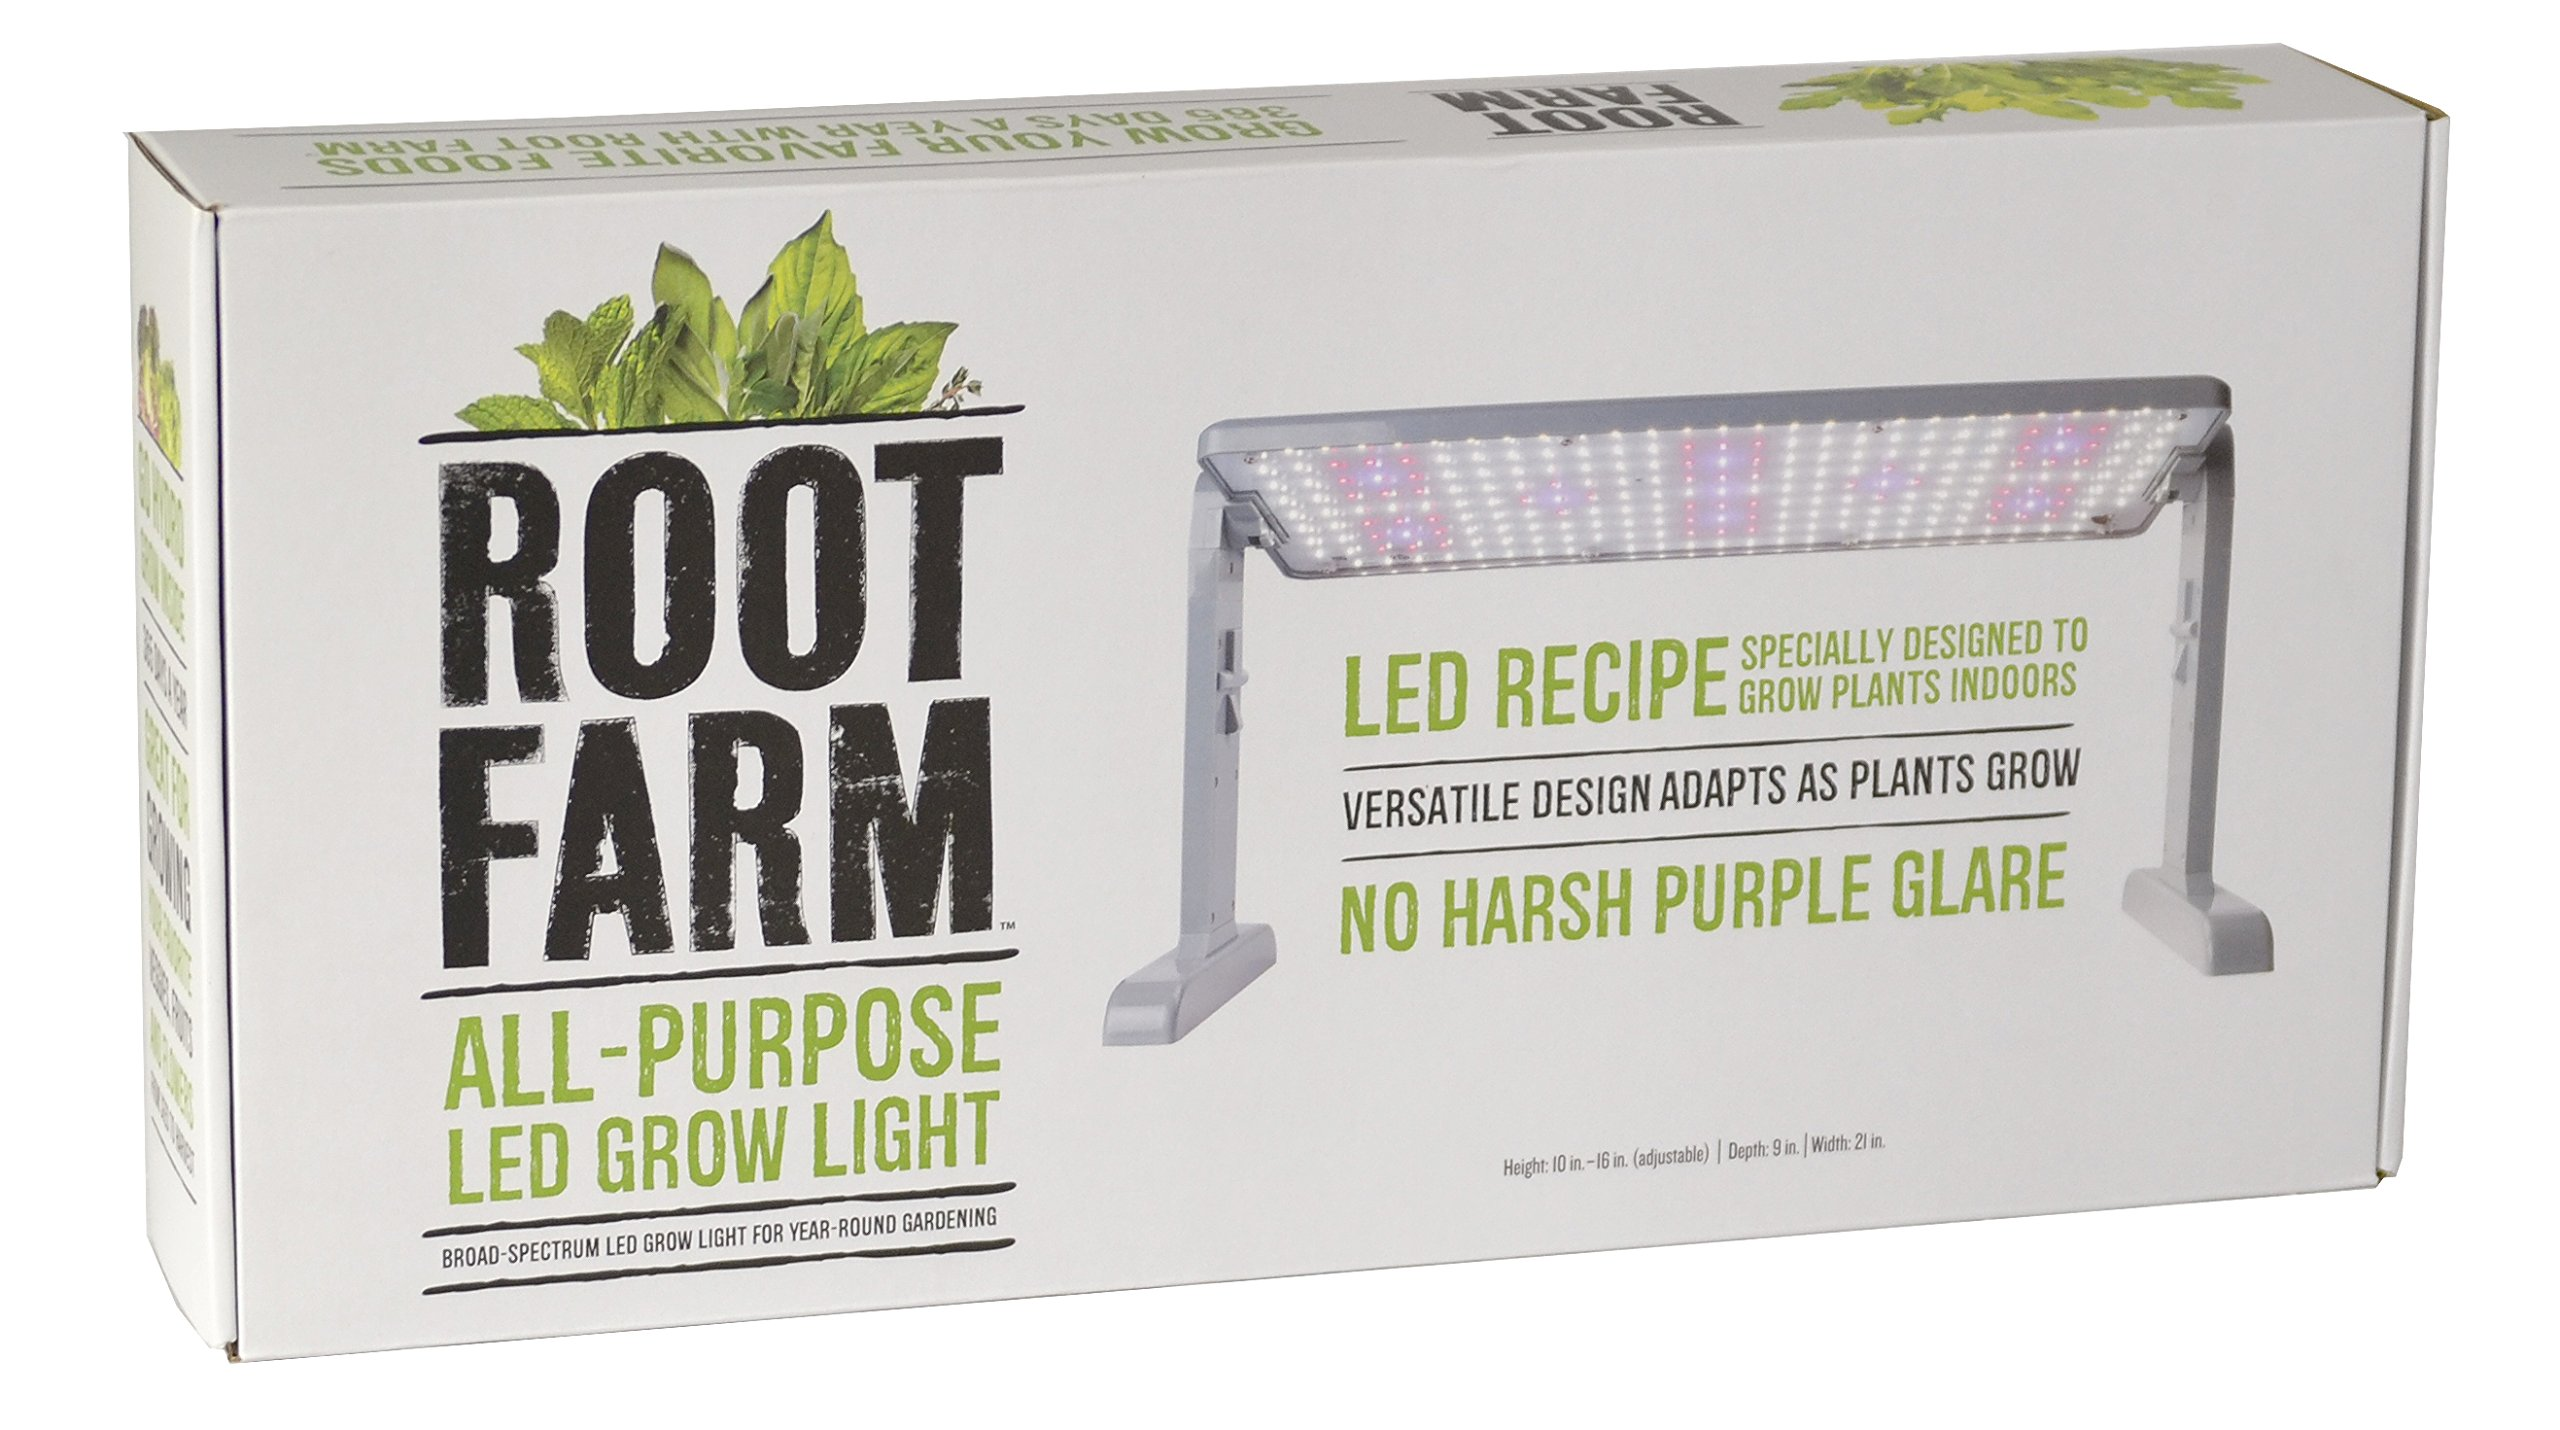 Root Farm All-Purpose LED Grow Light, 45W - Broad Spectrum Grow Lamp, For Indoor Hydroponic Plants, Energy Efficient by Root Farm